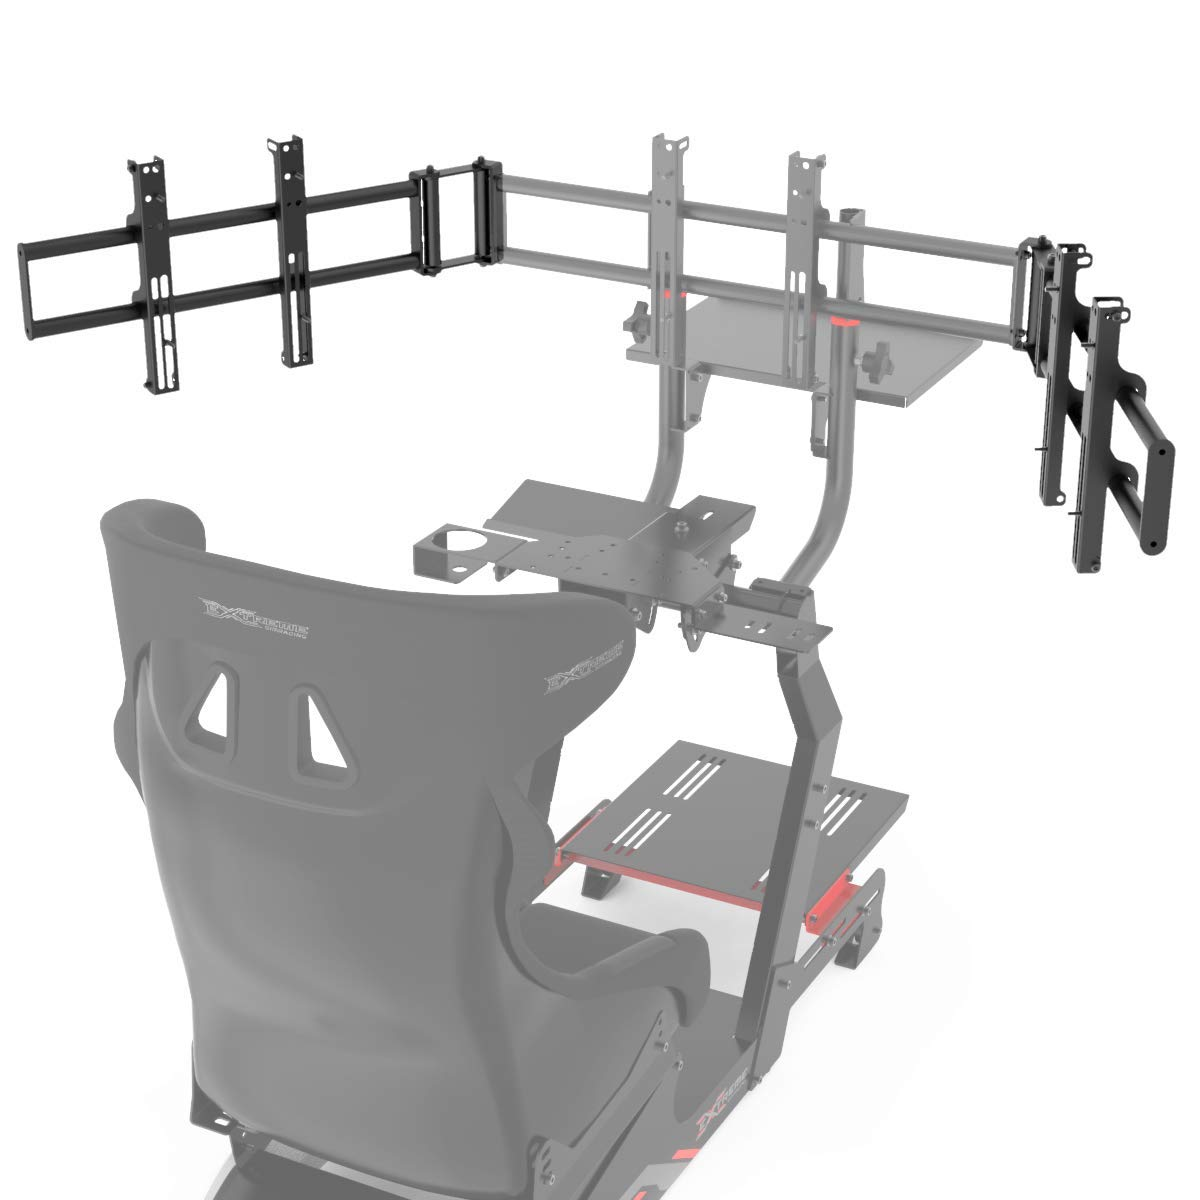 Extreme Sim Racing Triple Screen Tv Stand Add-on Upgrade for Cockpit P1 3.0 / Virtual Experience 3.0